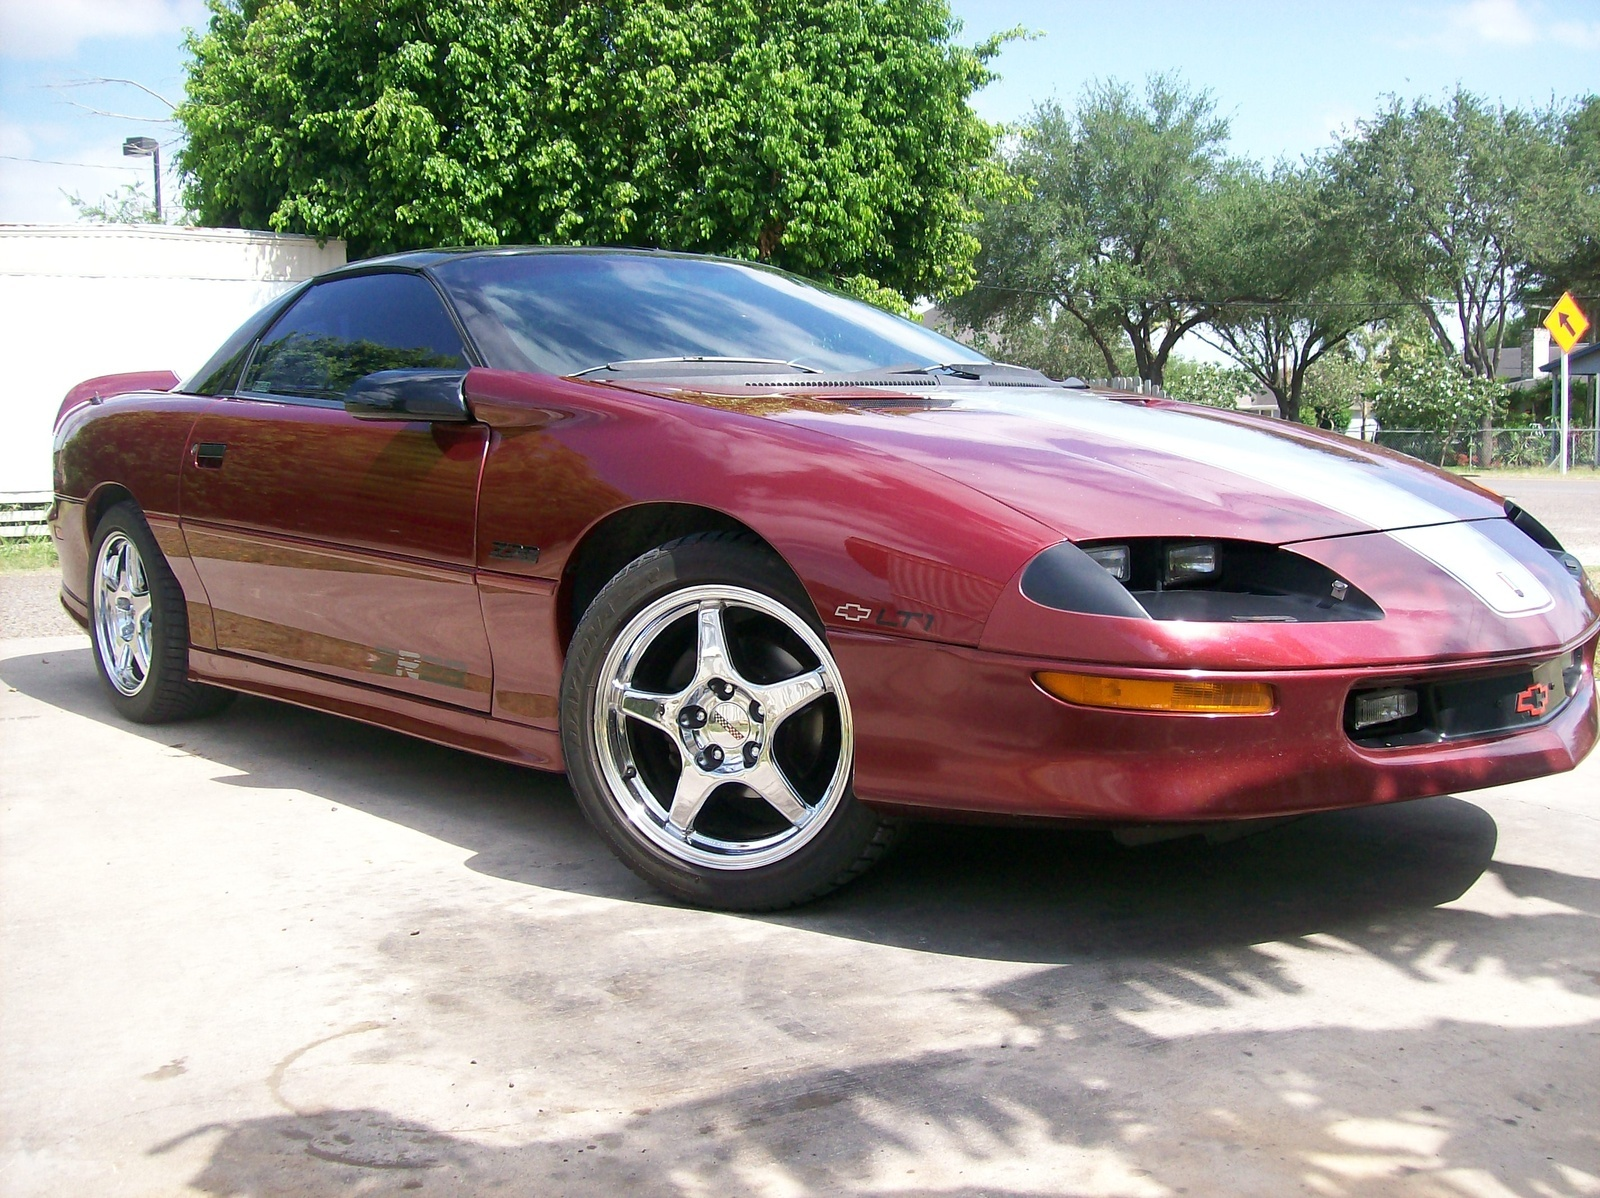 Picture of 1994 chevrolet camaro z28 exterior gallery_worthy